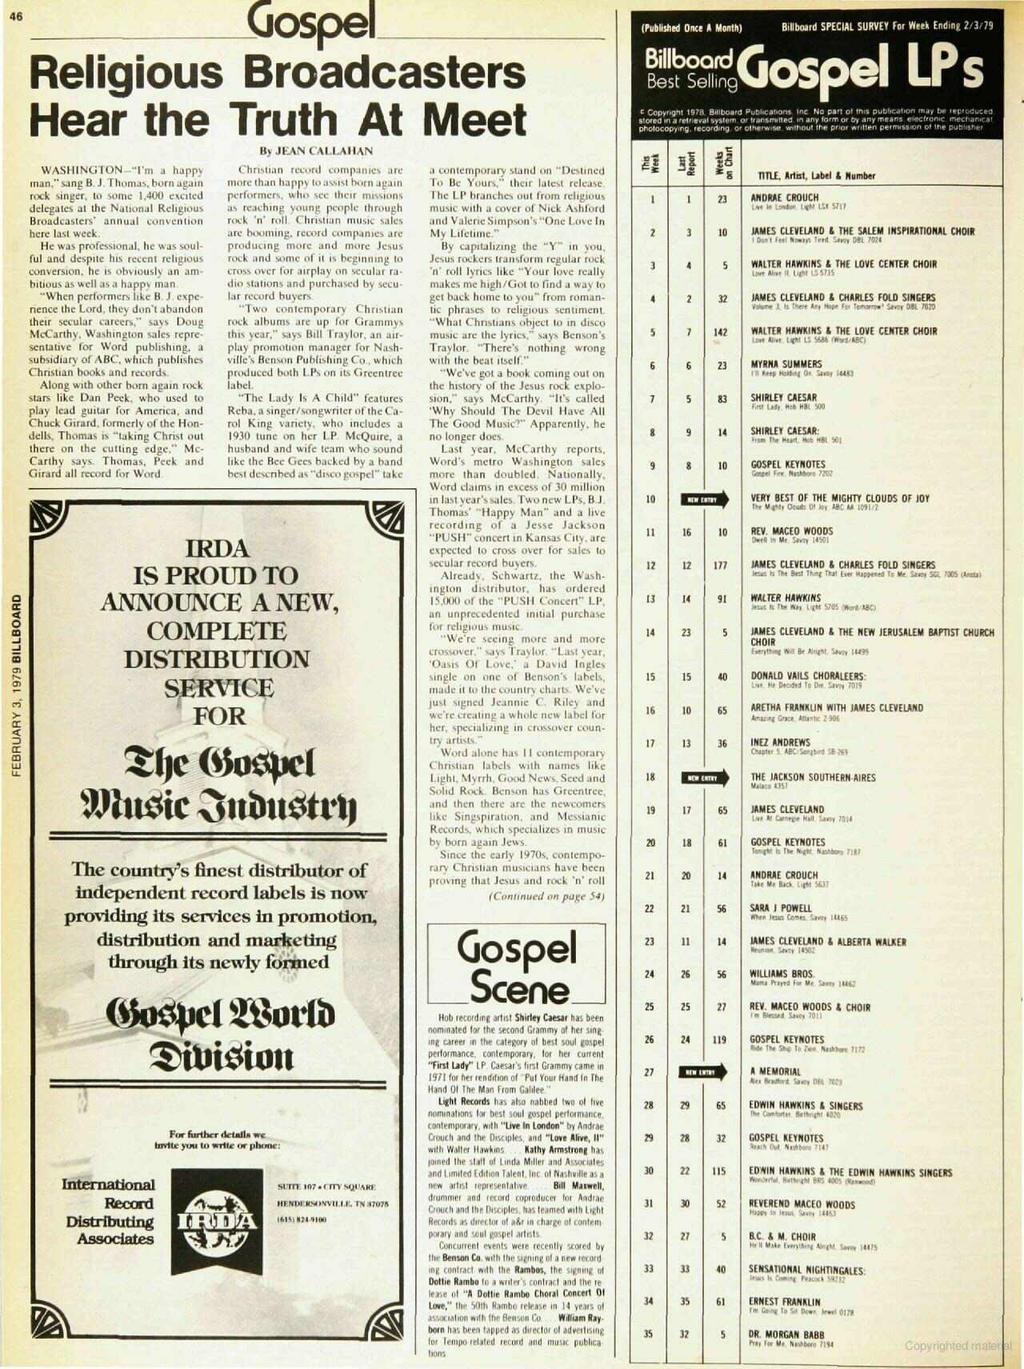 46 Gospel Religious Broadcasters Hear the Truth At Meet (Published Once A Month) Billboard SPECAL SURVEY For Week Ending 2.379 8illbocard Best Sellen 9 c 19 28 87117oa,d puebca6ons nc No parl ol tn.